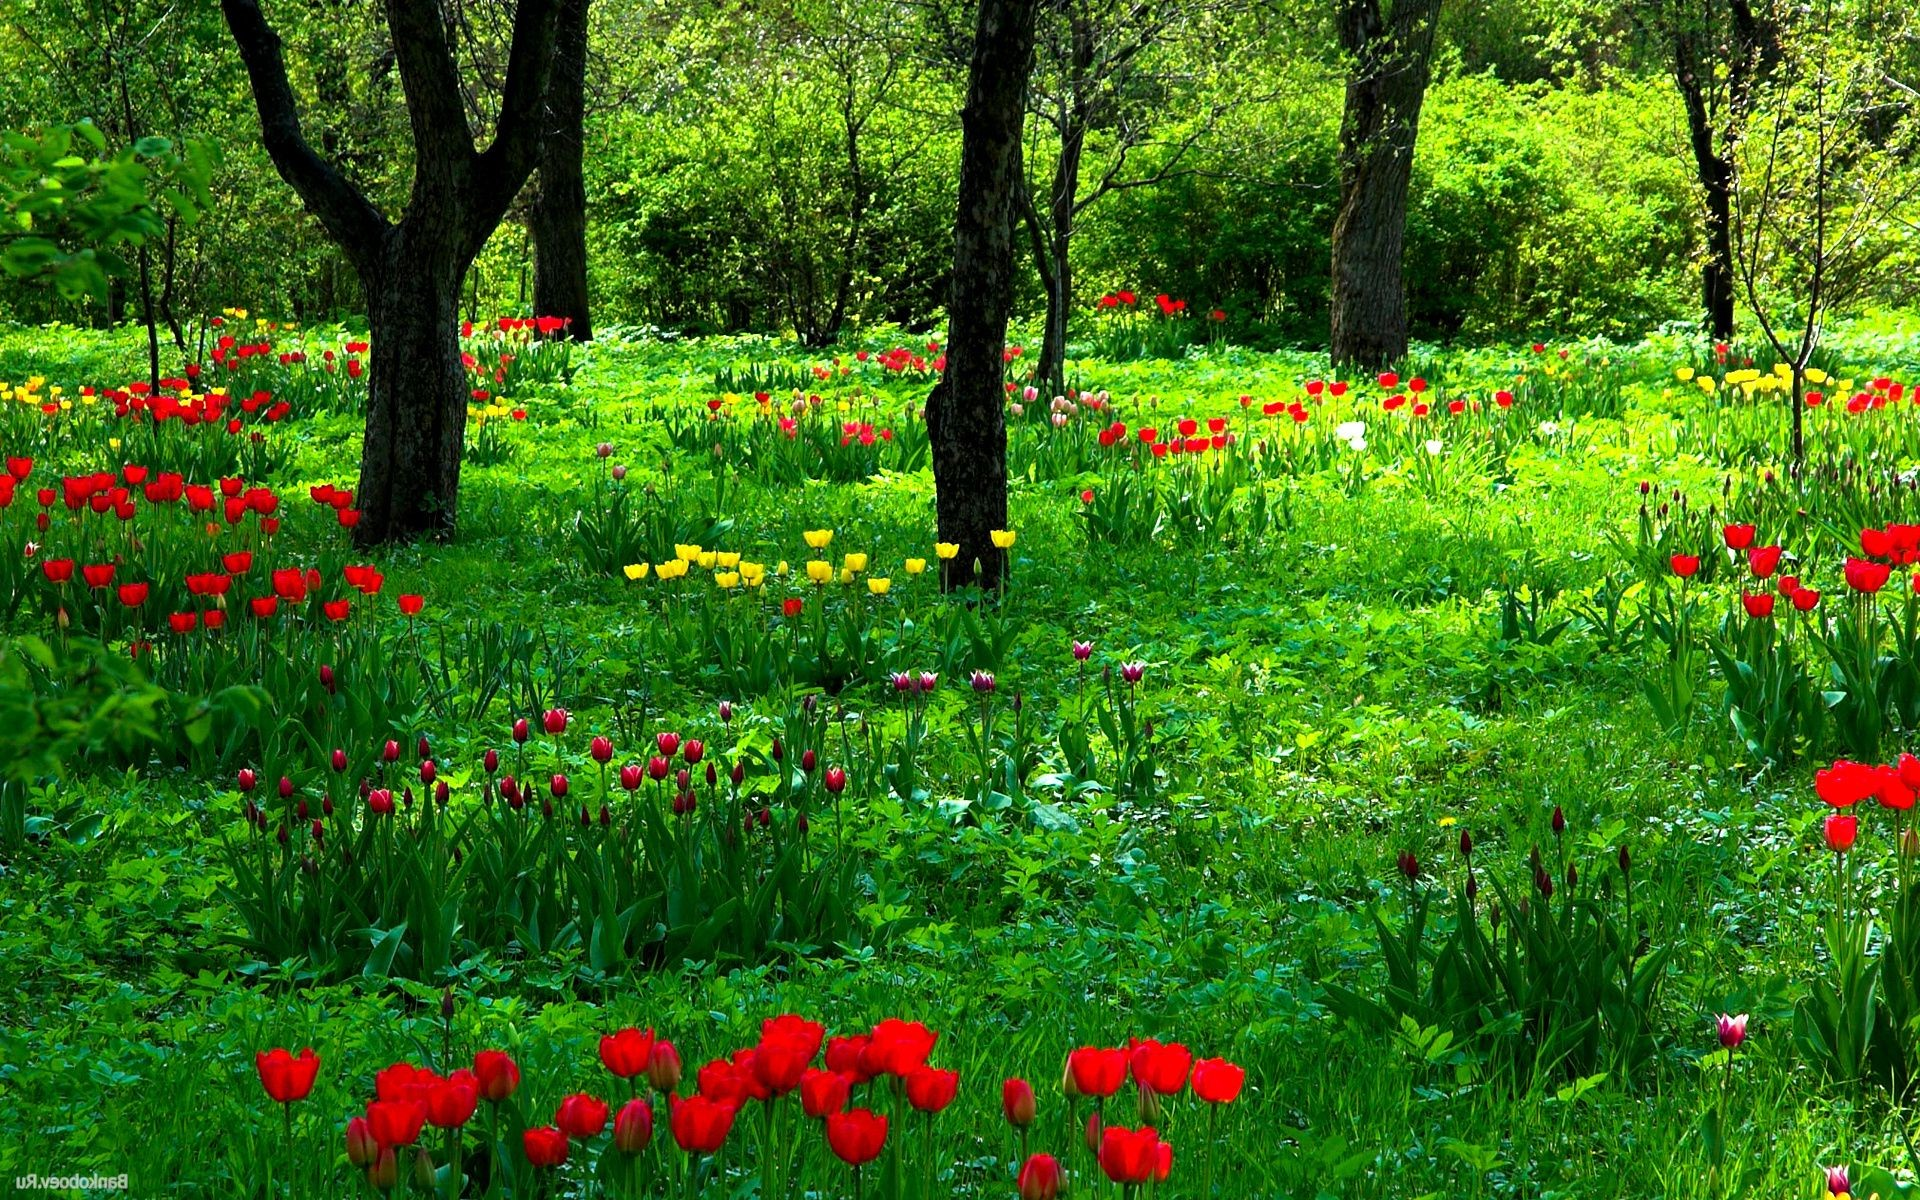 forest flower nature garden grass flora summer leaf hayfield growth field poppy rural blooming landscape floral season park outdoors color